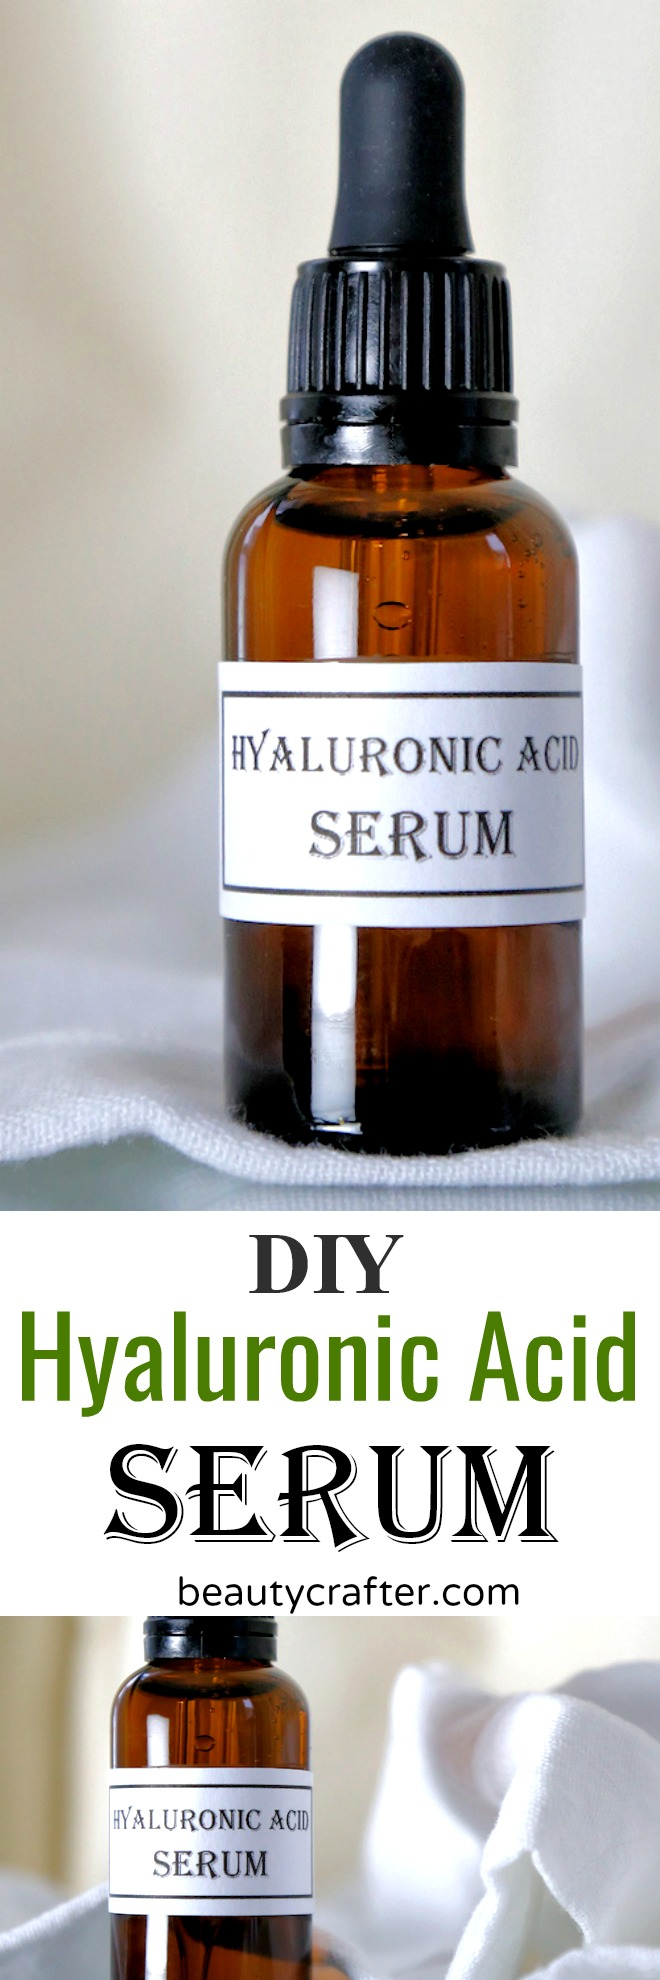 DIY Hyaluronic Acid Serum recipe - make your own anti-aging serum #skincare #beauty #antiaging